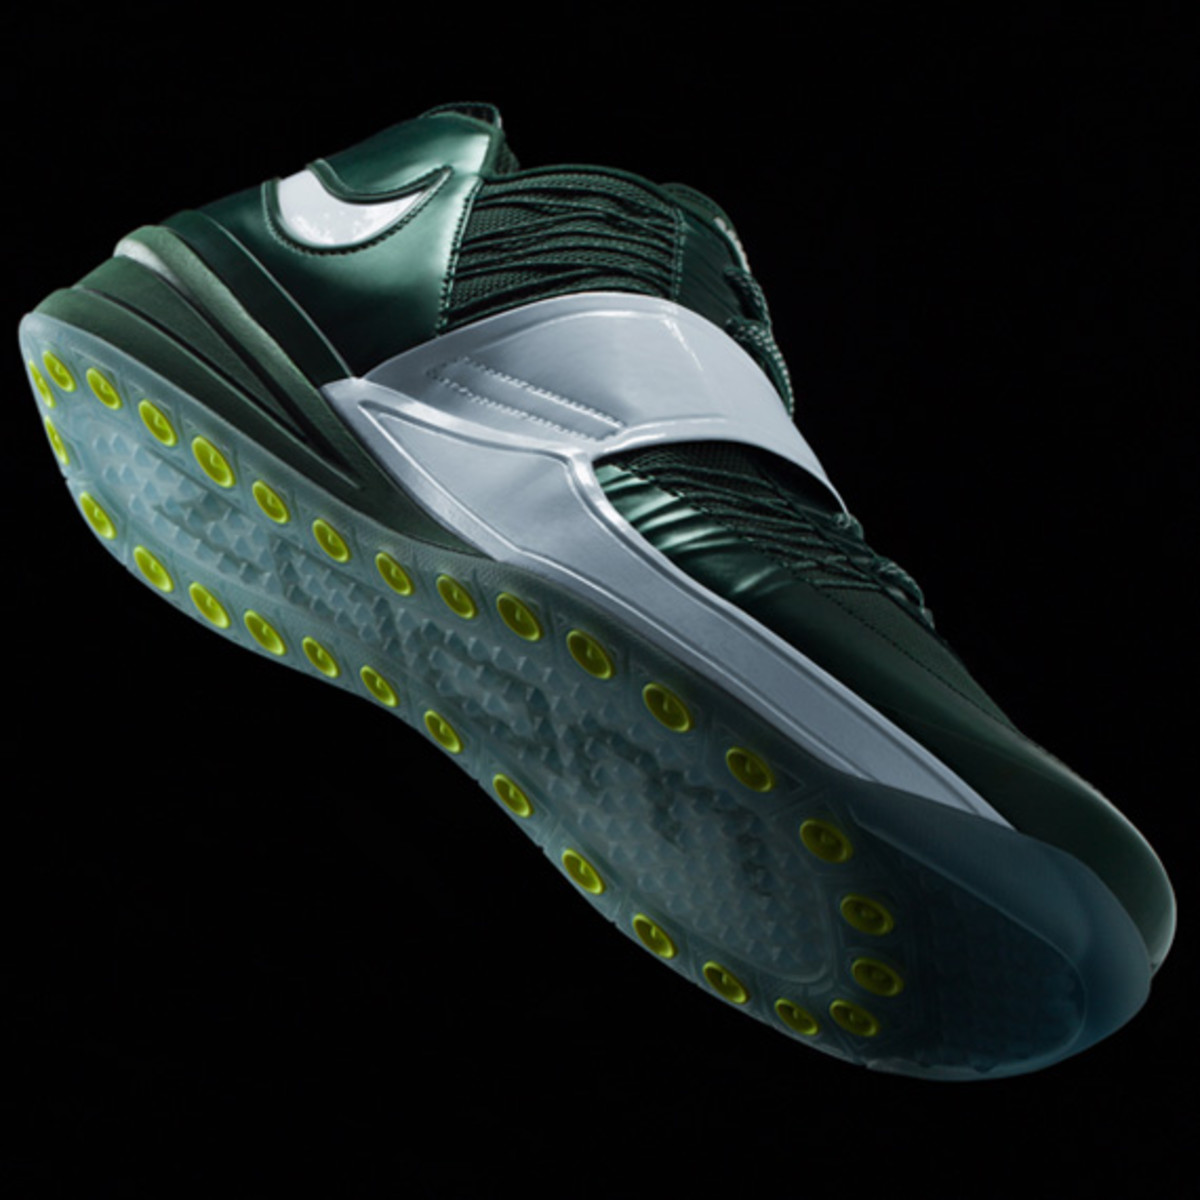 darrelle-revis-nike-zoom-revis-officially-unveiled-11